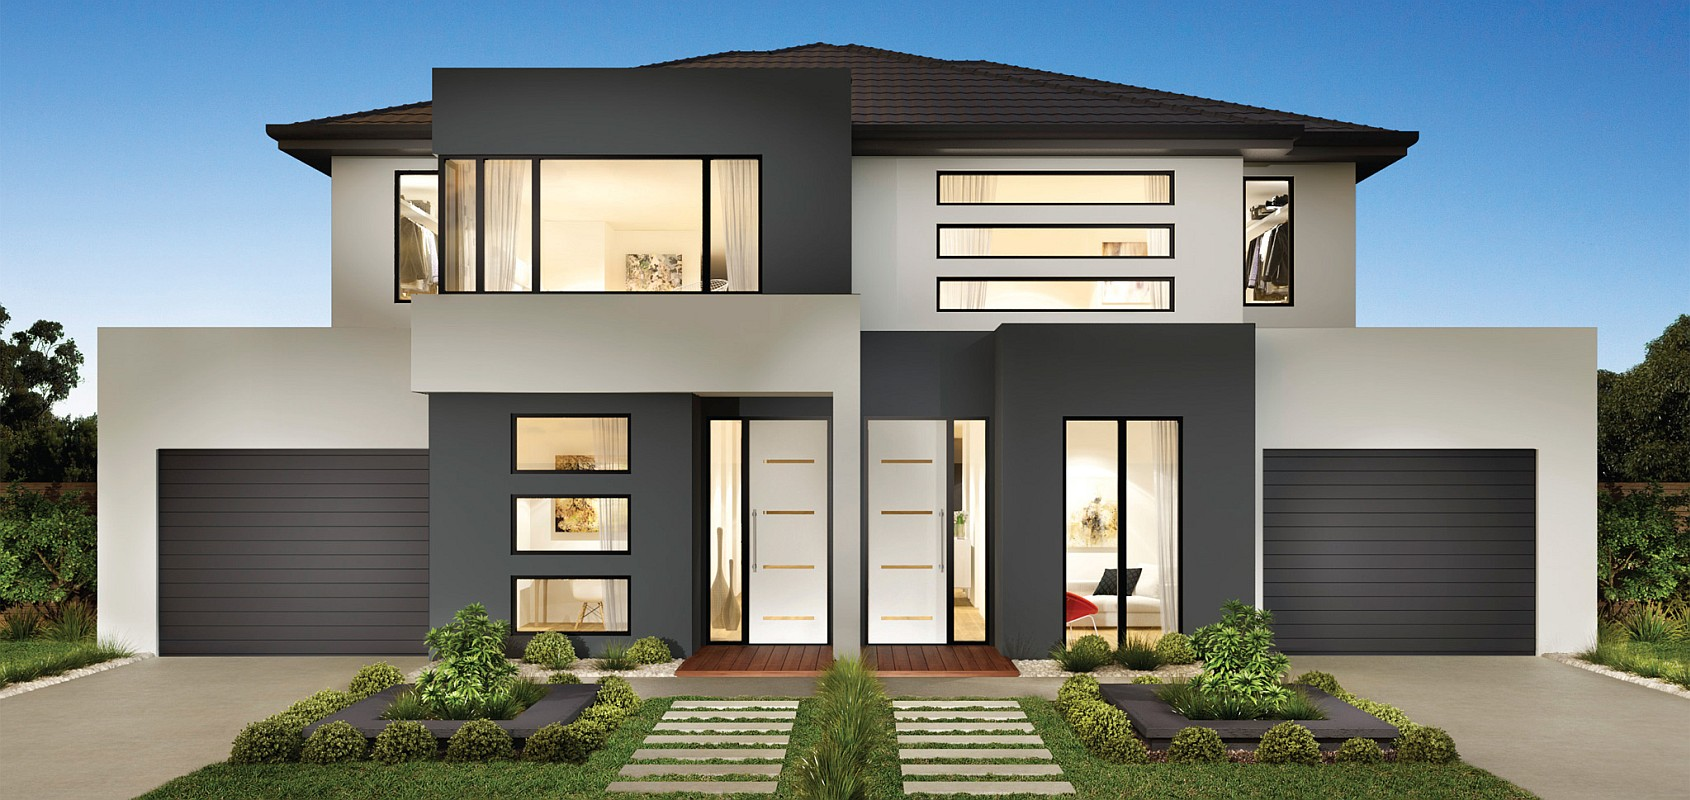 Some of melbournes most prominent and highly regarded new home builders rely on connelly associates to accurately mark out property boundaries and